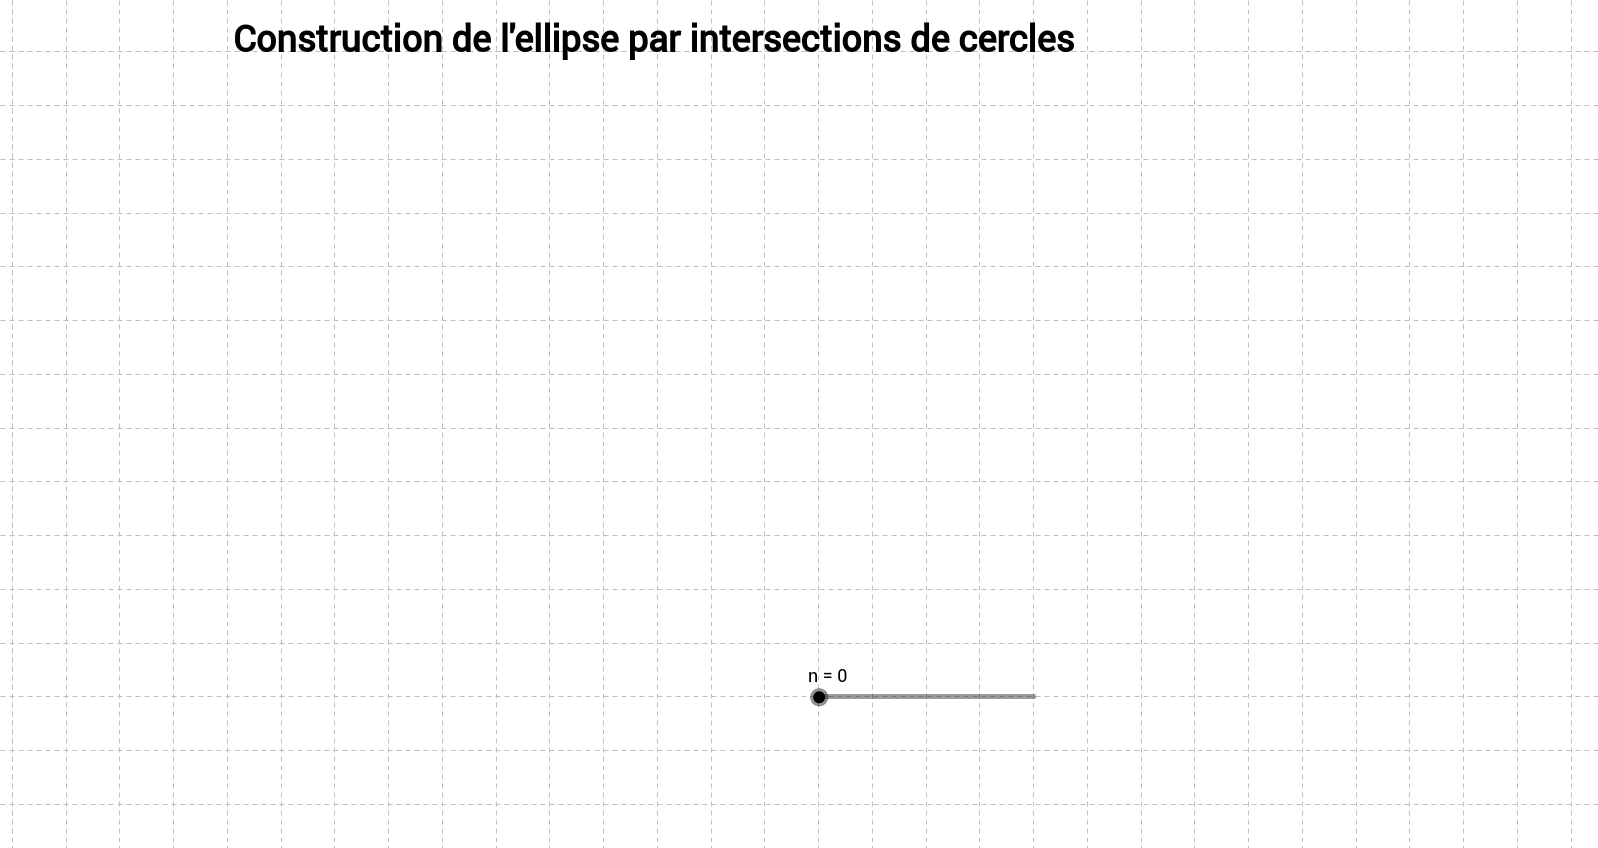 Construction de l'ellipse